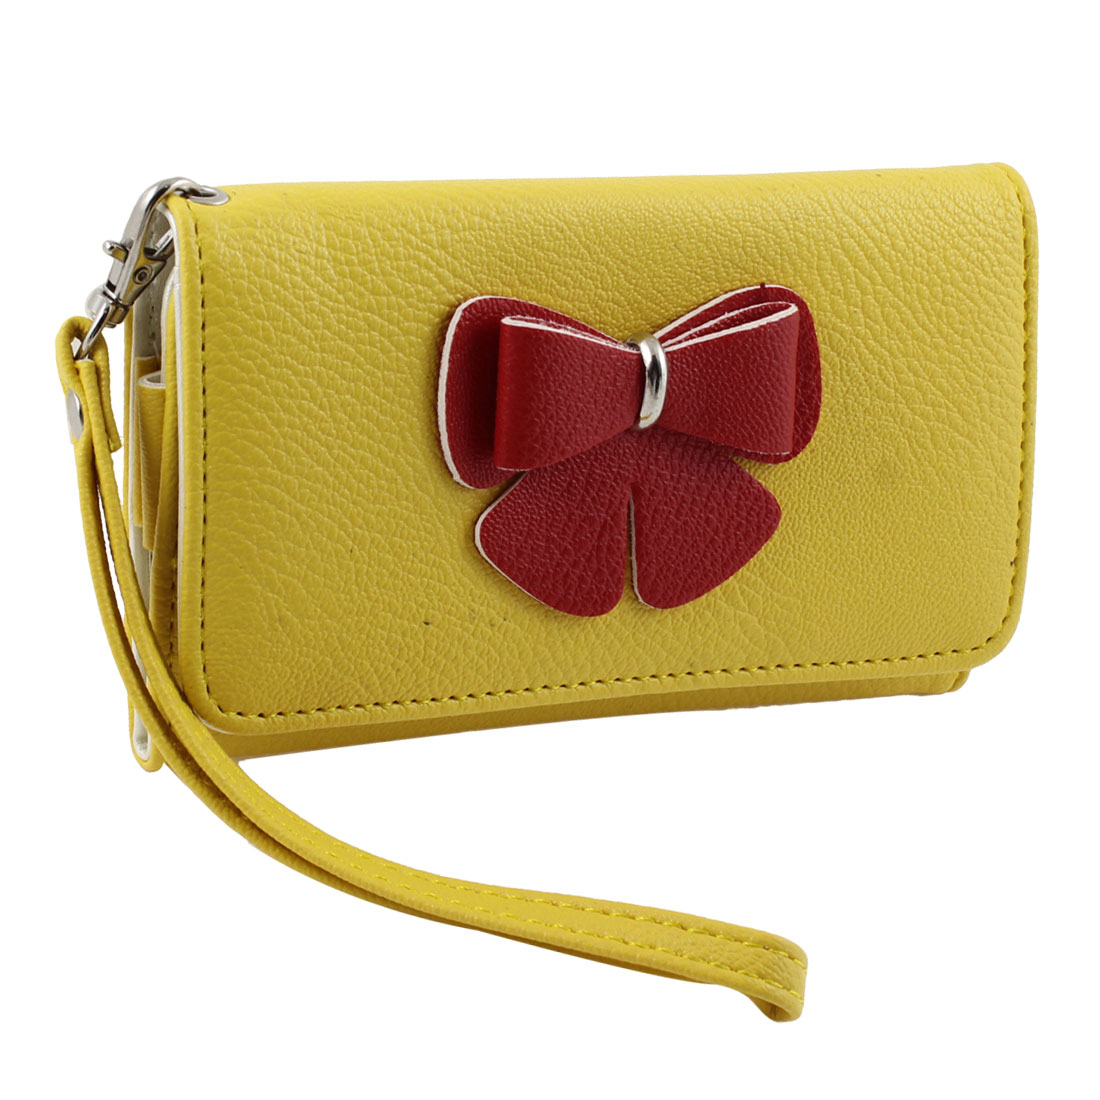 Woman Lady Bowtie Decor Rectangle Wristlet Coin Purse Phone Holder Yellow Red